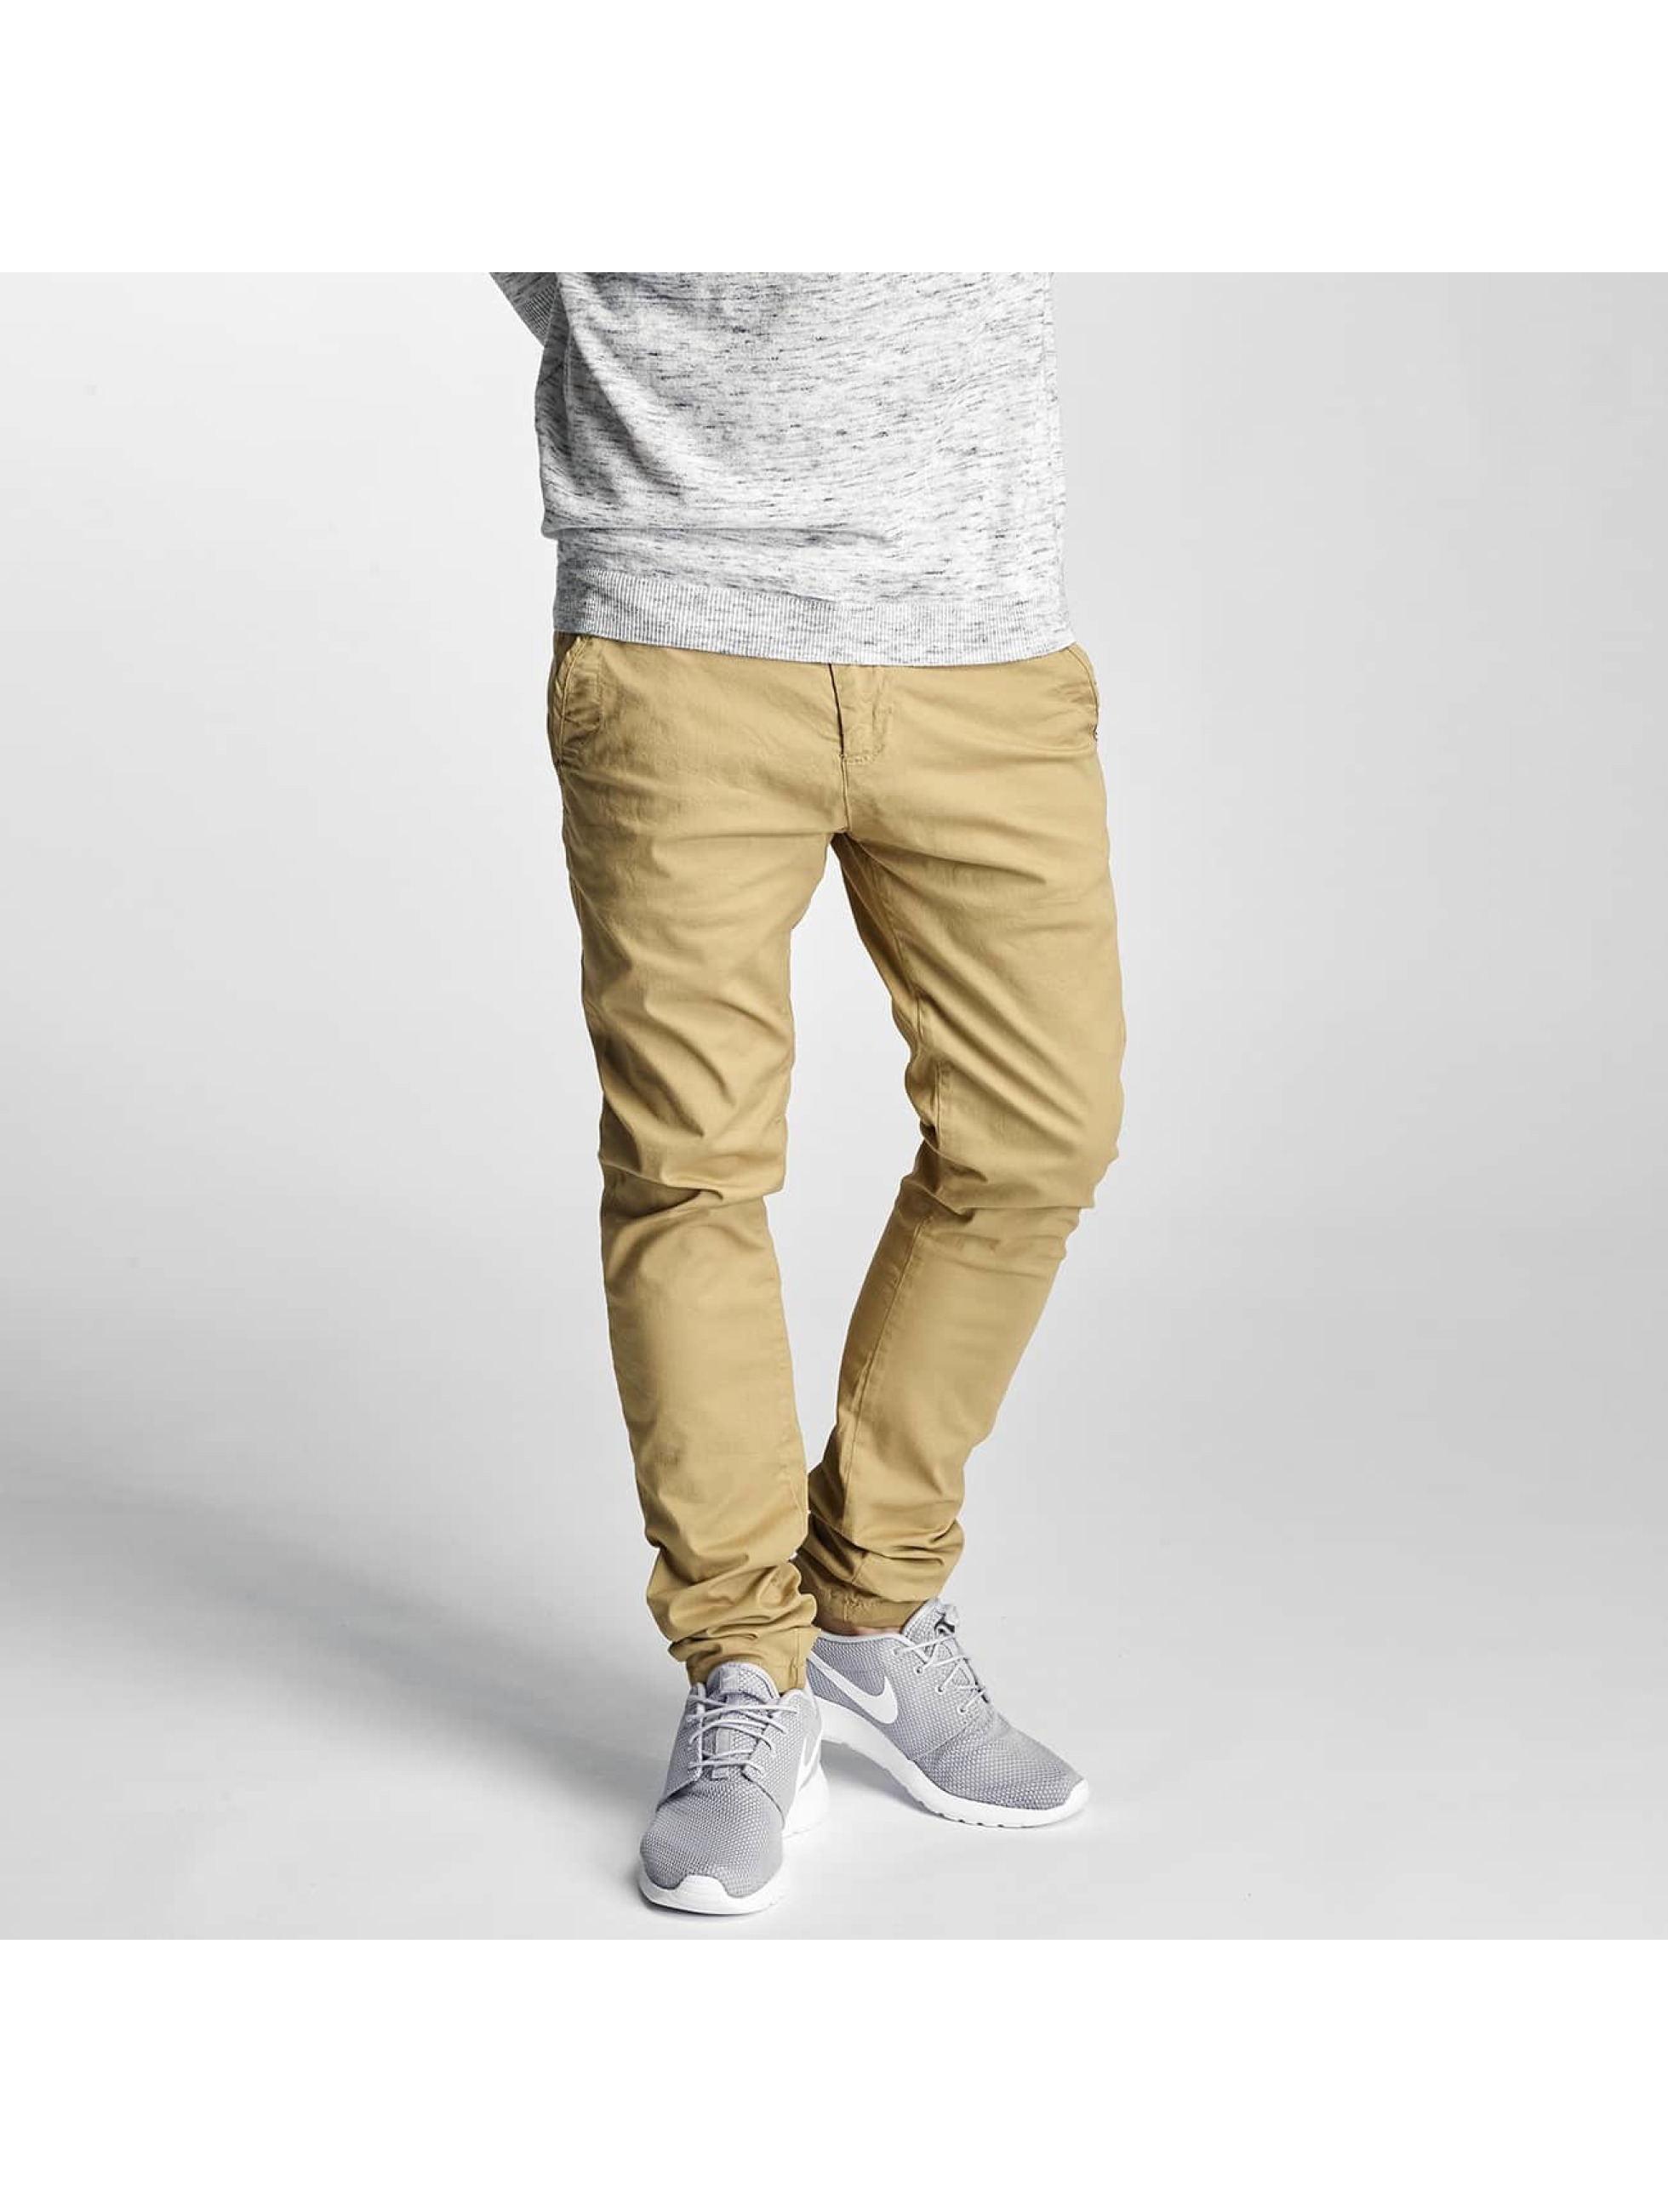 Solid Männer Chino Joe Crisp in beige